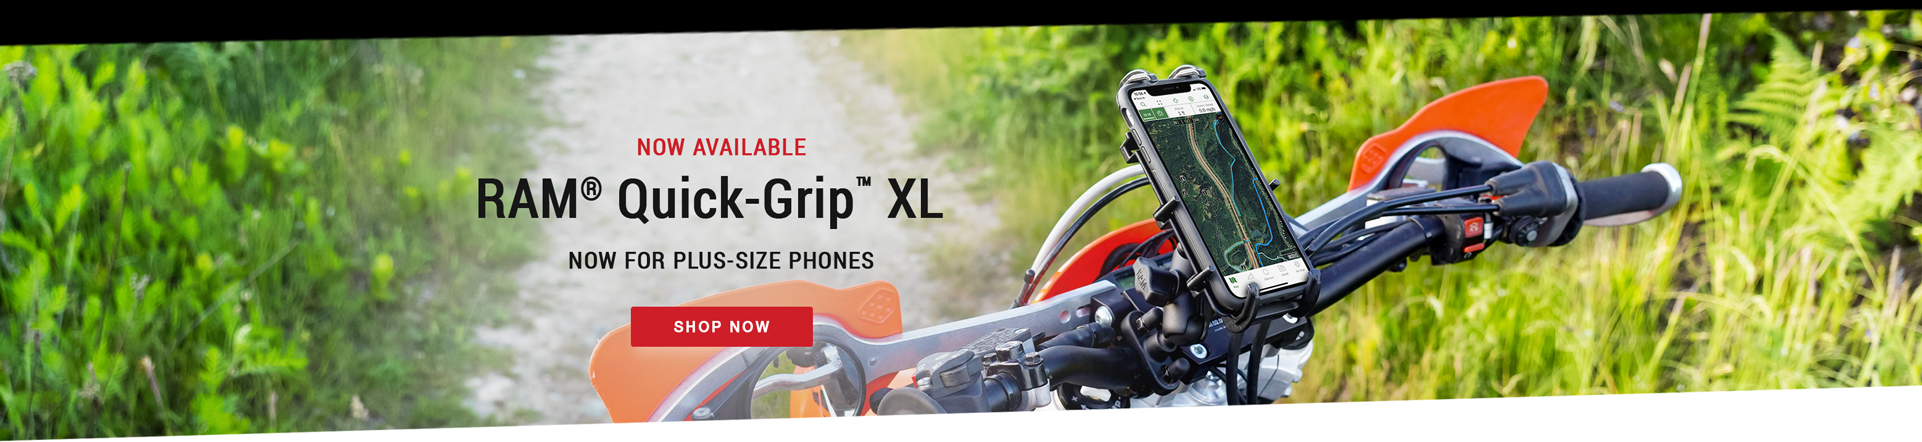 RAM® Quick-Grip™ XL Now For Plus Size Phones